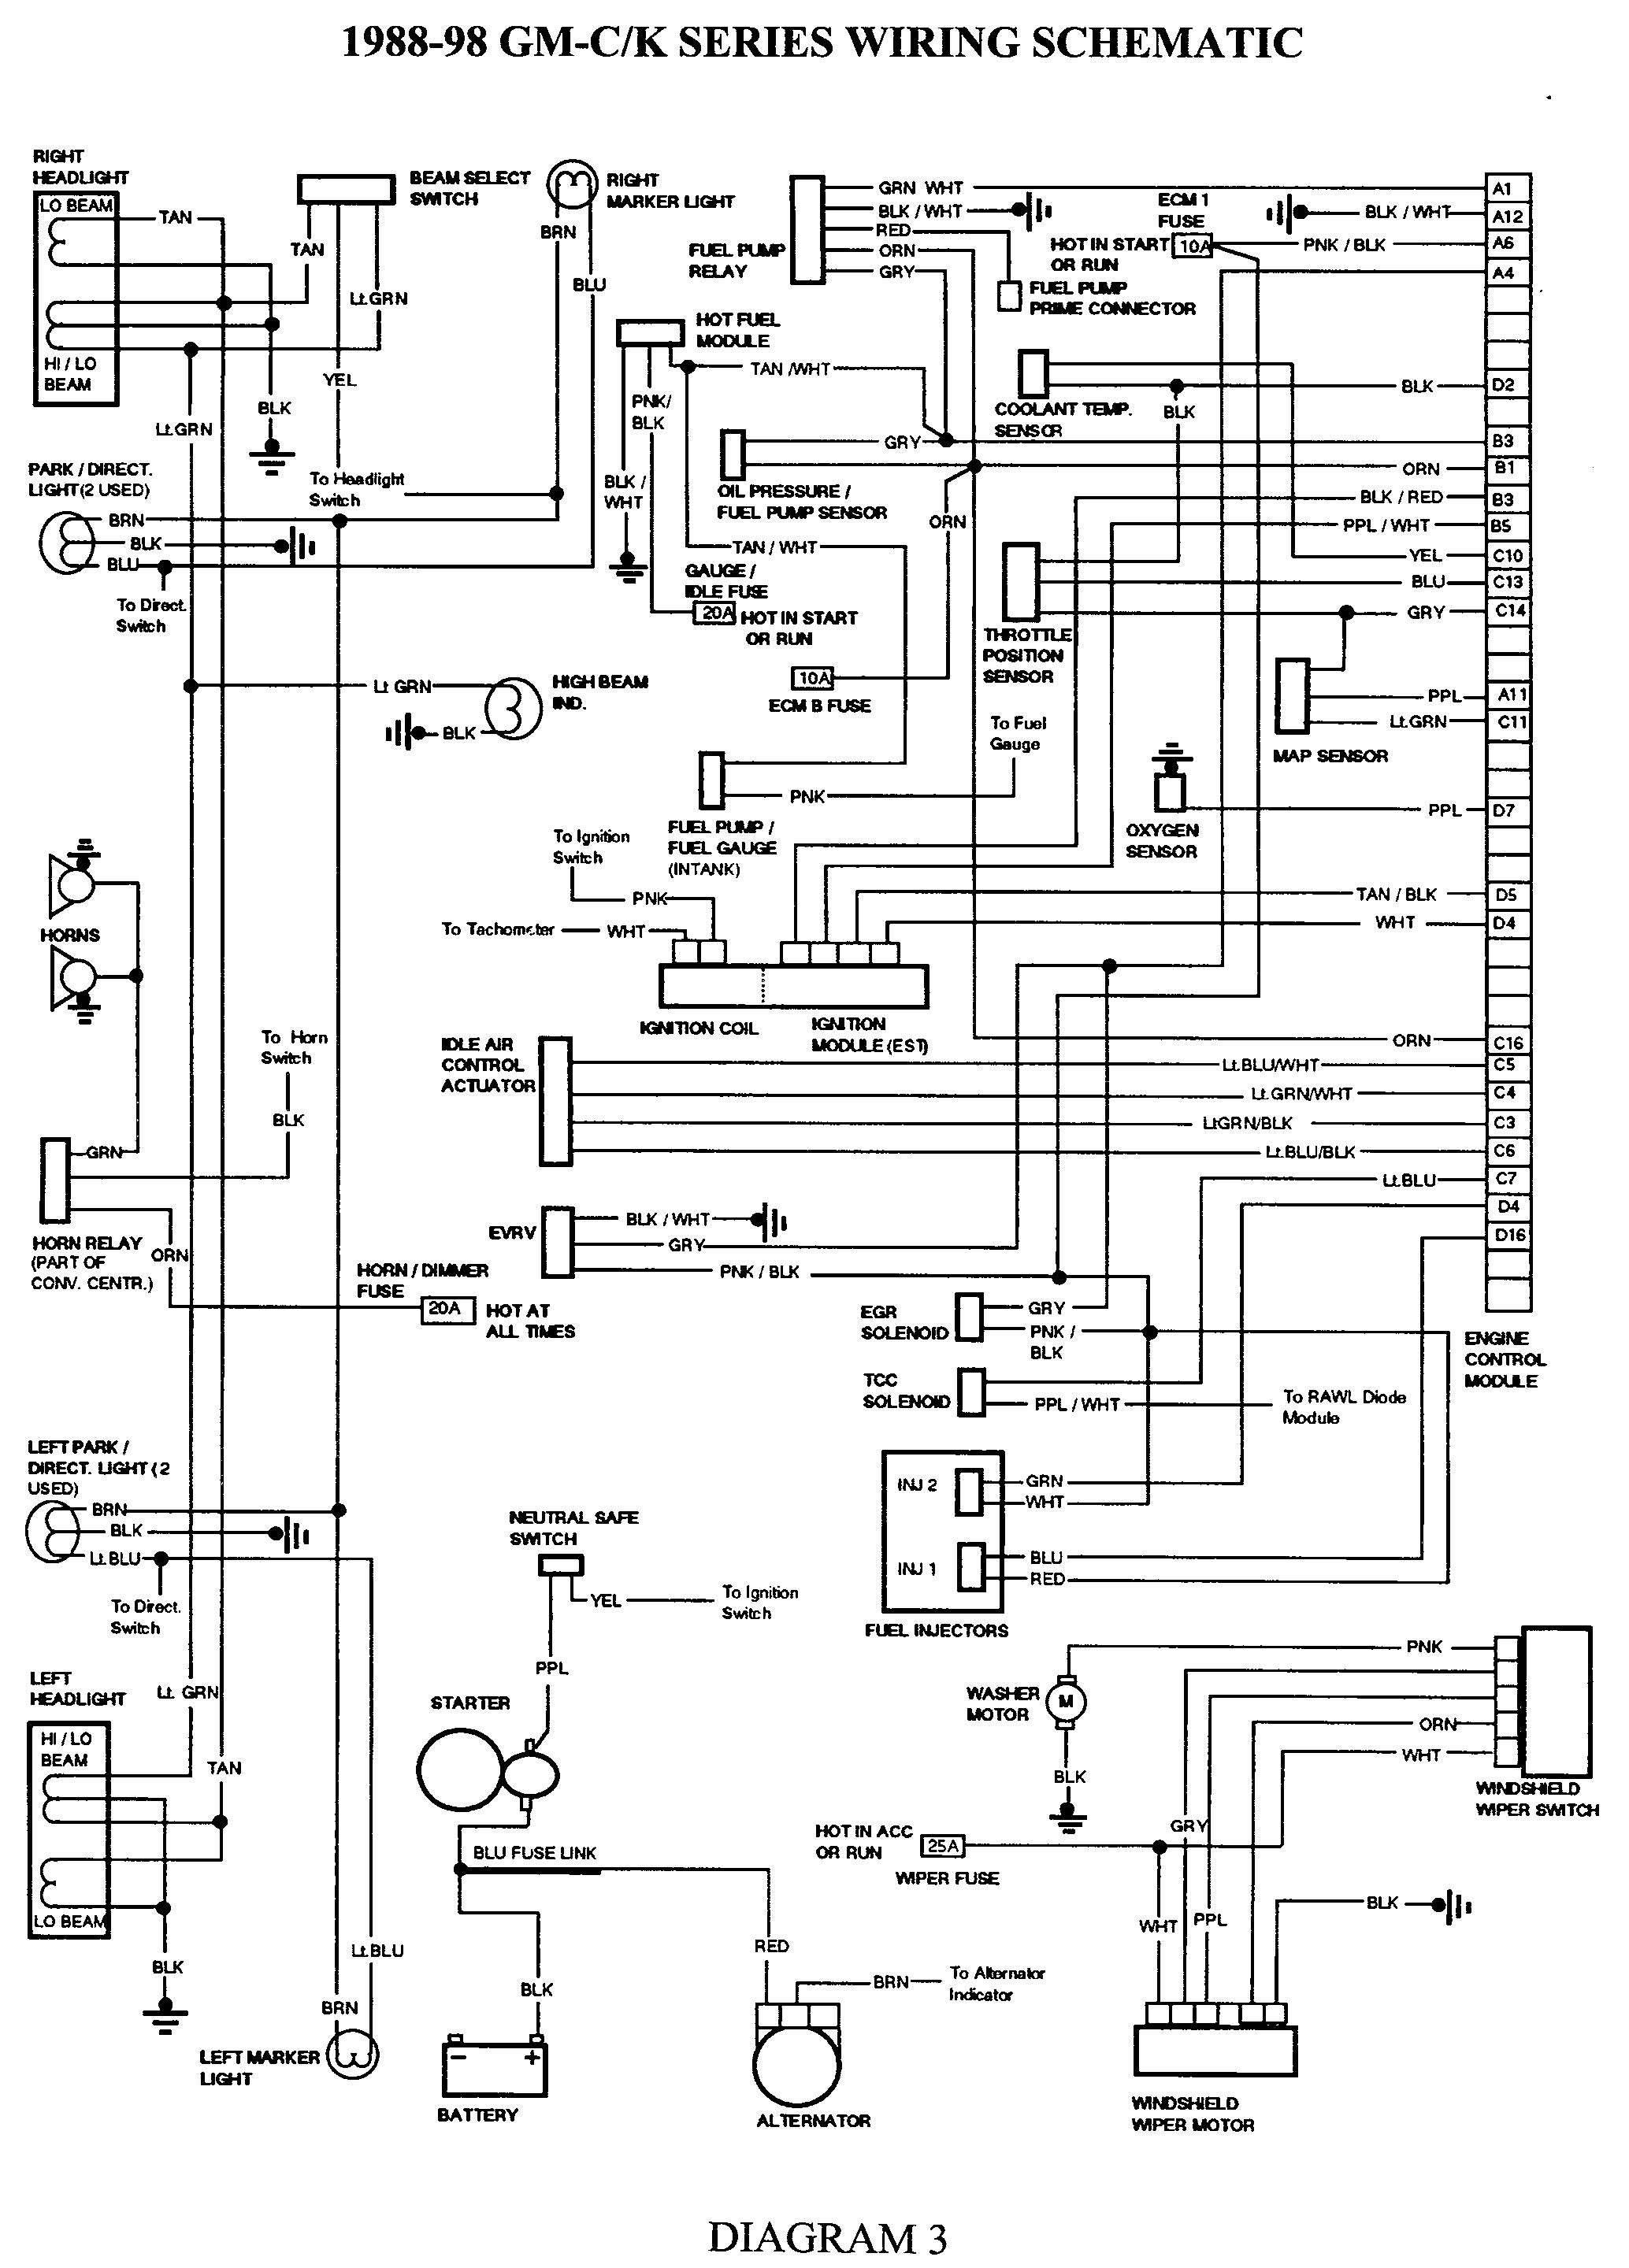 Wiring Diagram 2009 Chevy Silverado Wiring Schematic Diagram Electrical Diagram Chevy 1500 Electrical Wiring Diagram